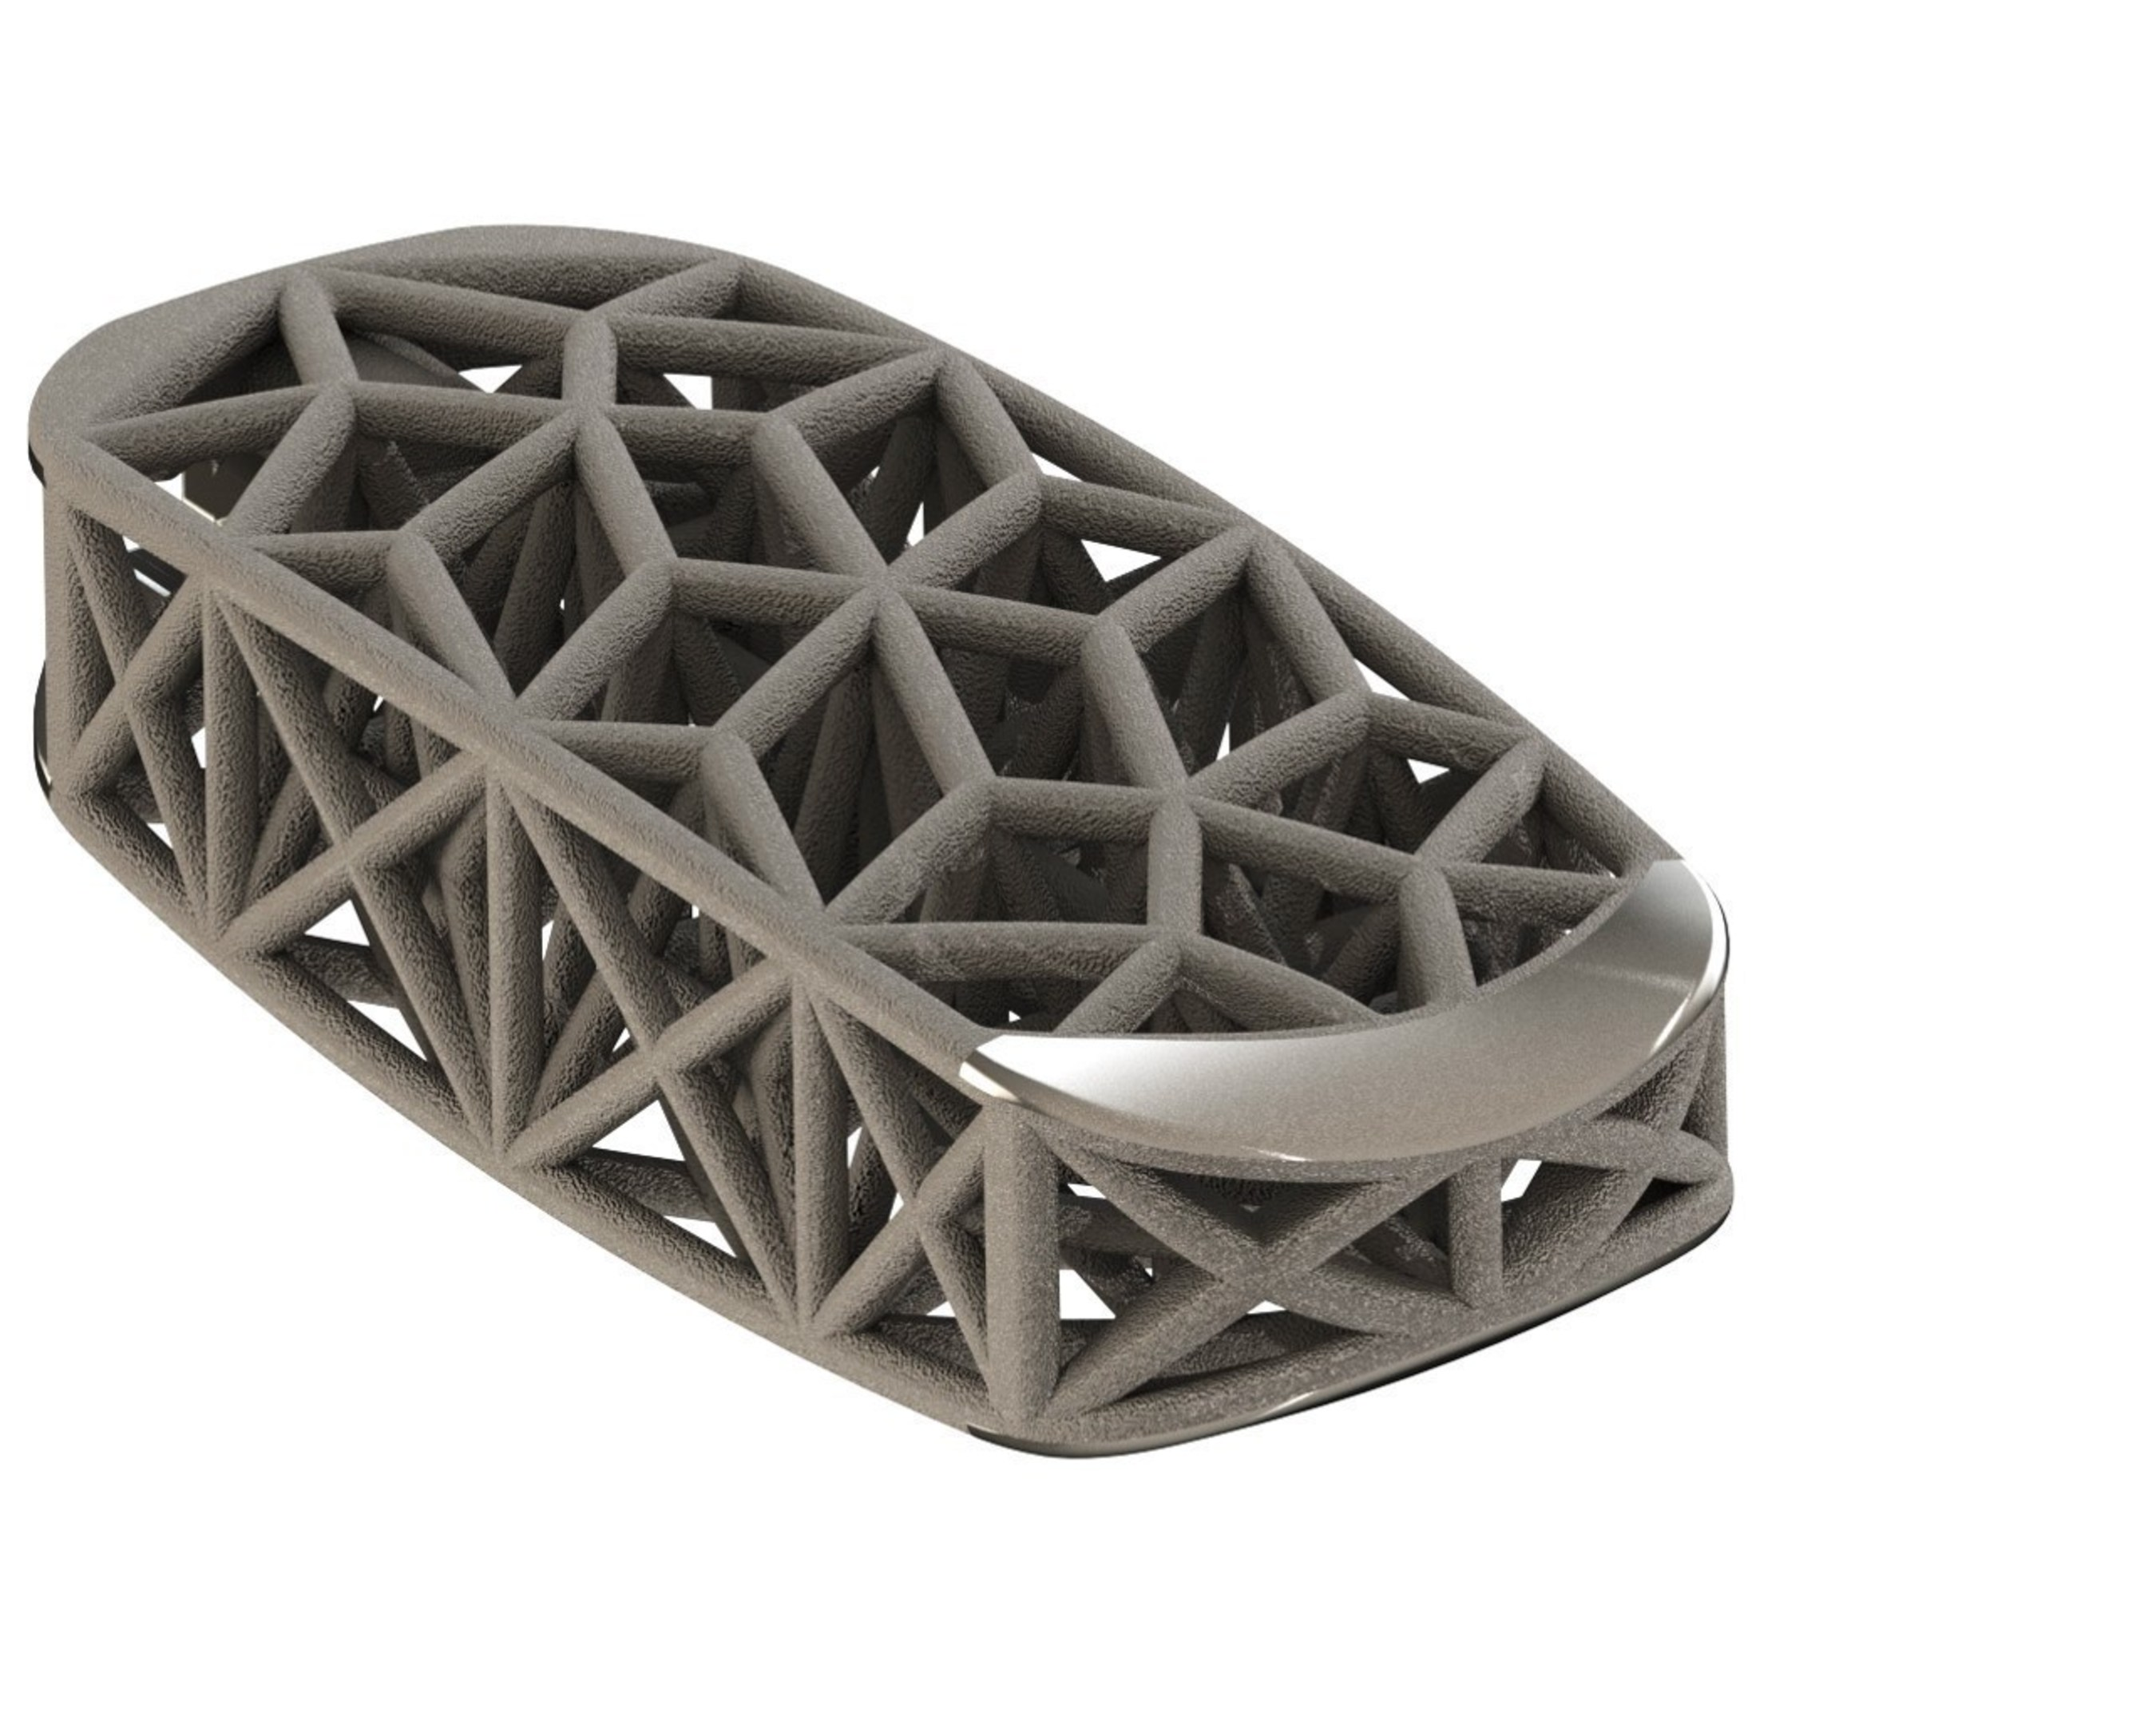 4WEB Medical Announces FDA Clearance of Lateral Spine Truss